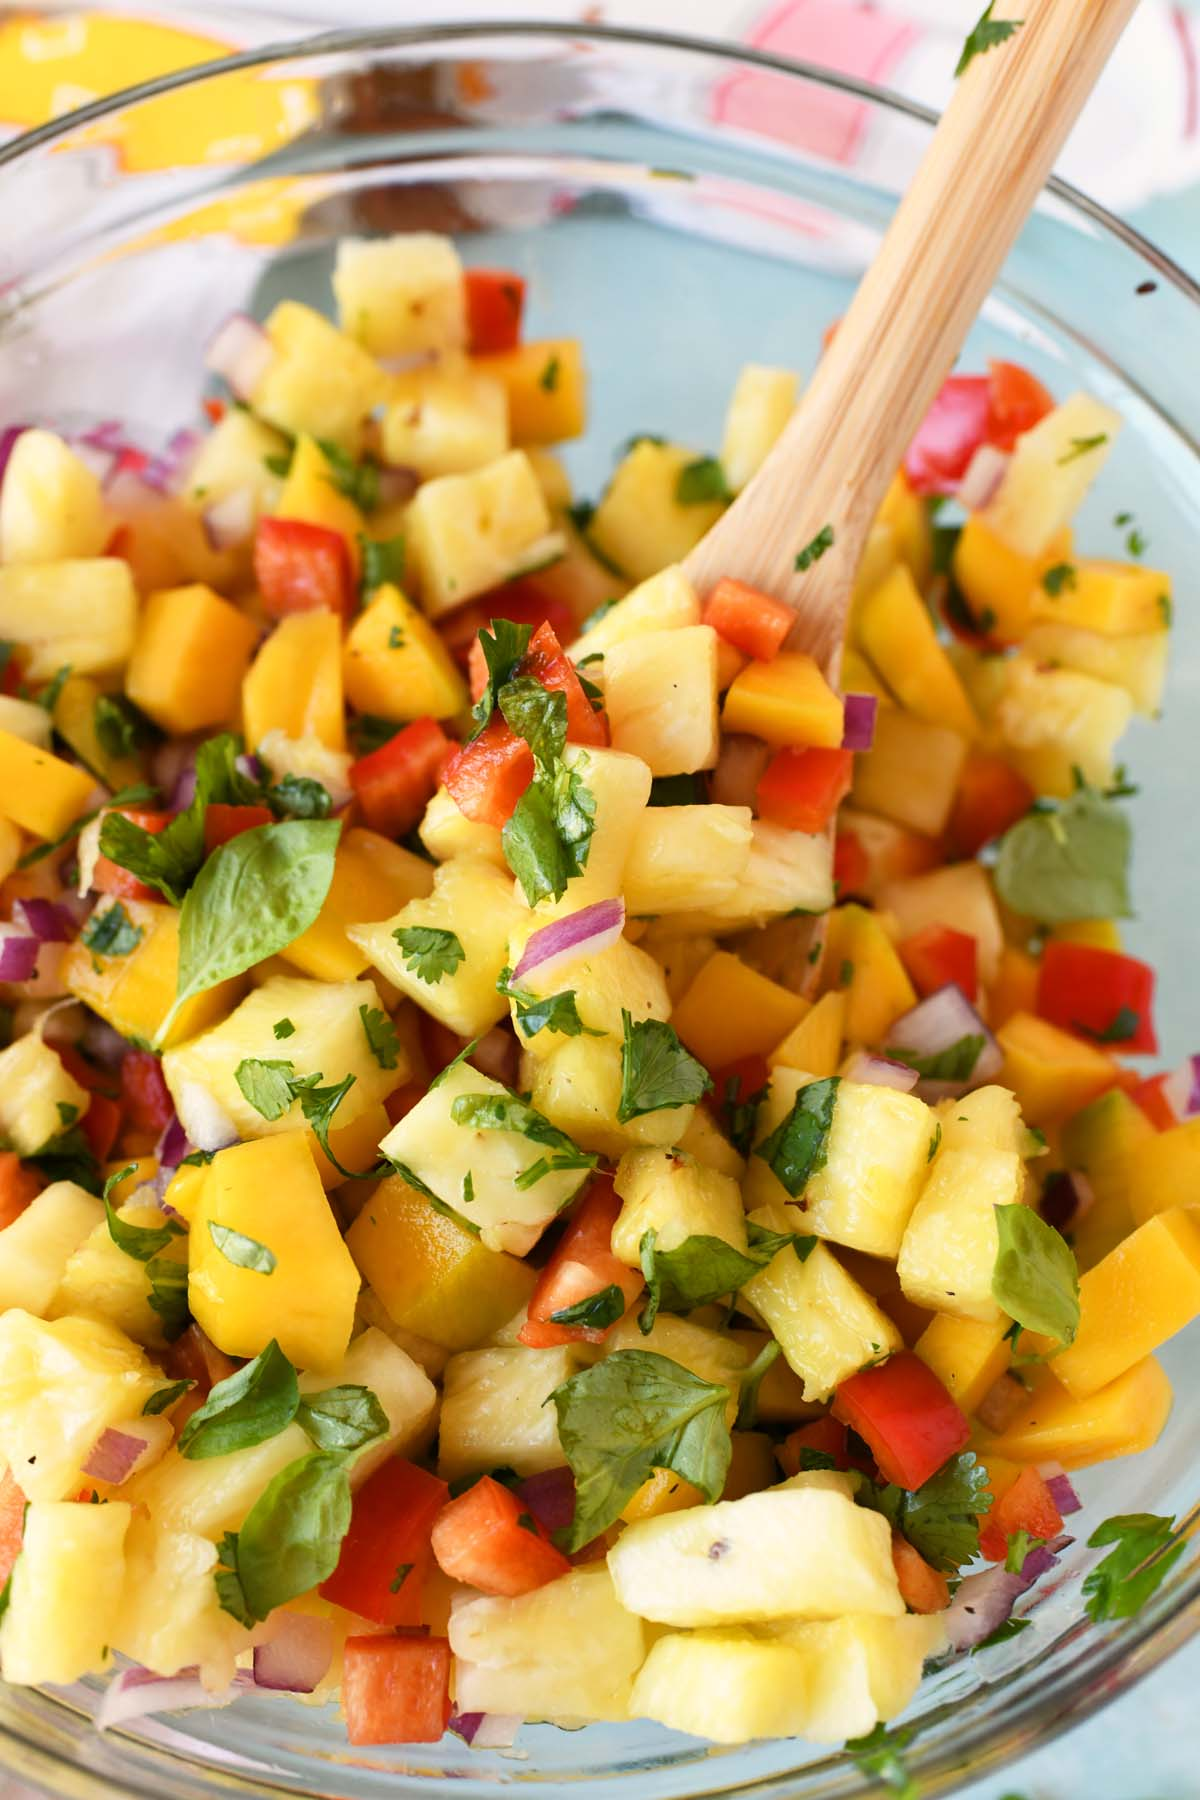 Pineapple Mango Salsa Recipe in a glass bowl with a wooden spoon inside.